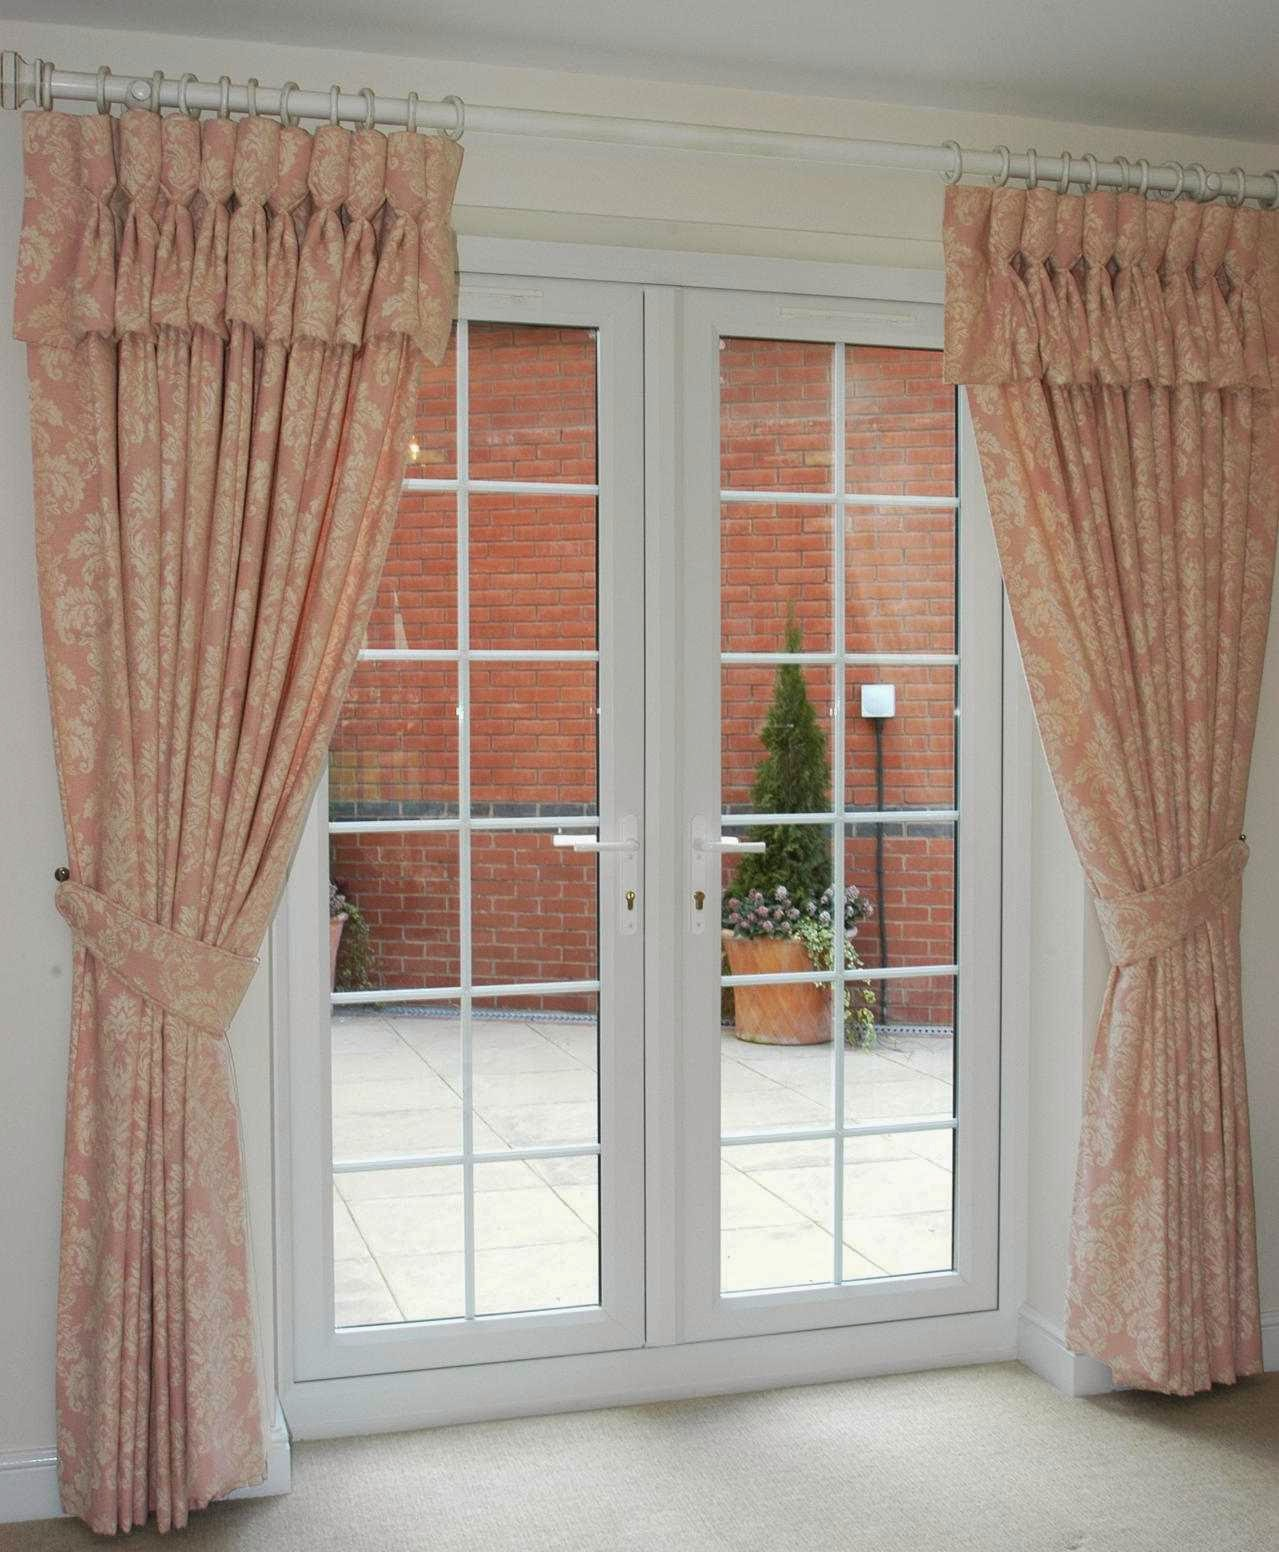 patio-door-window-treatment-ideas-french-door-curtains